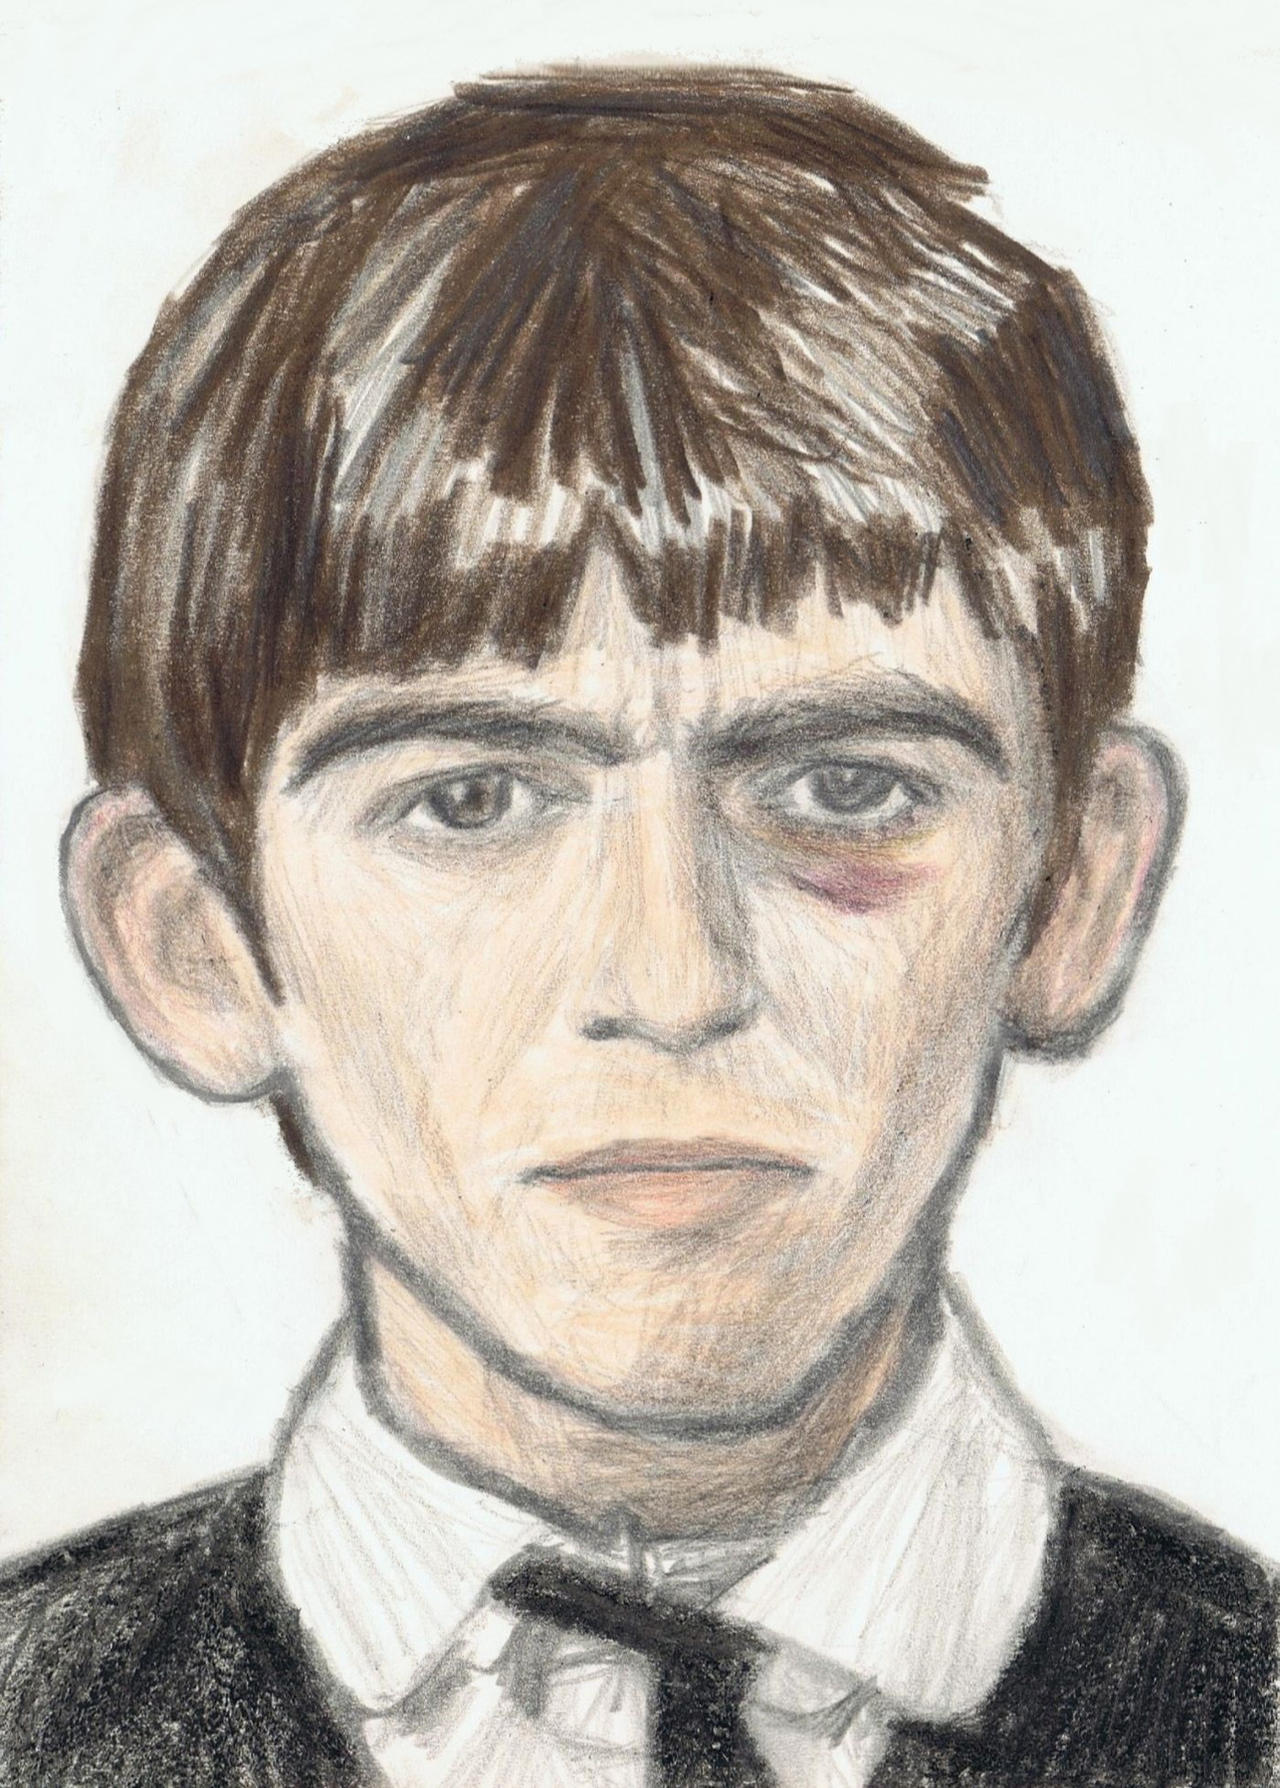 George Harrison with a black eye by gagambo